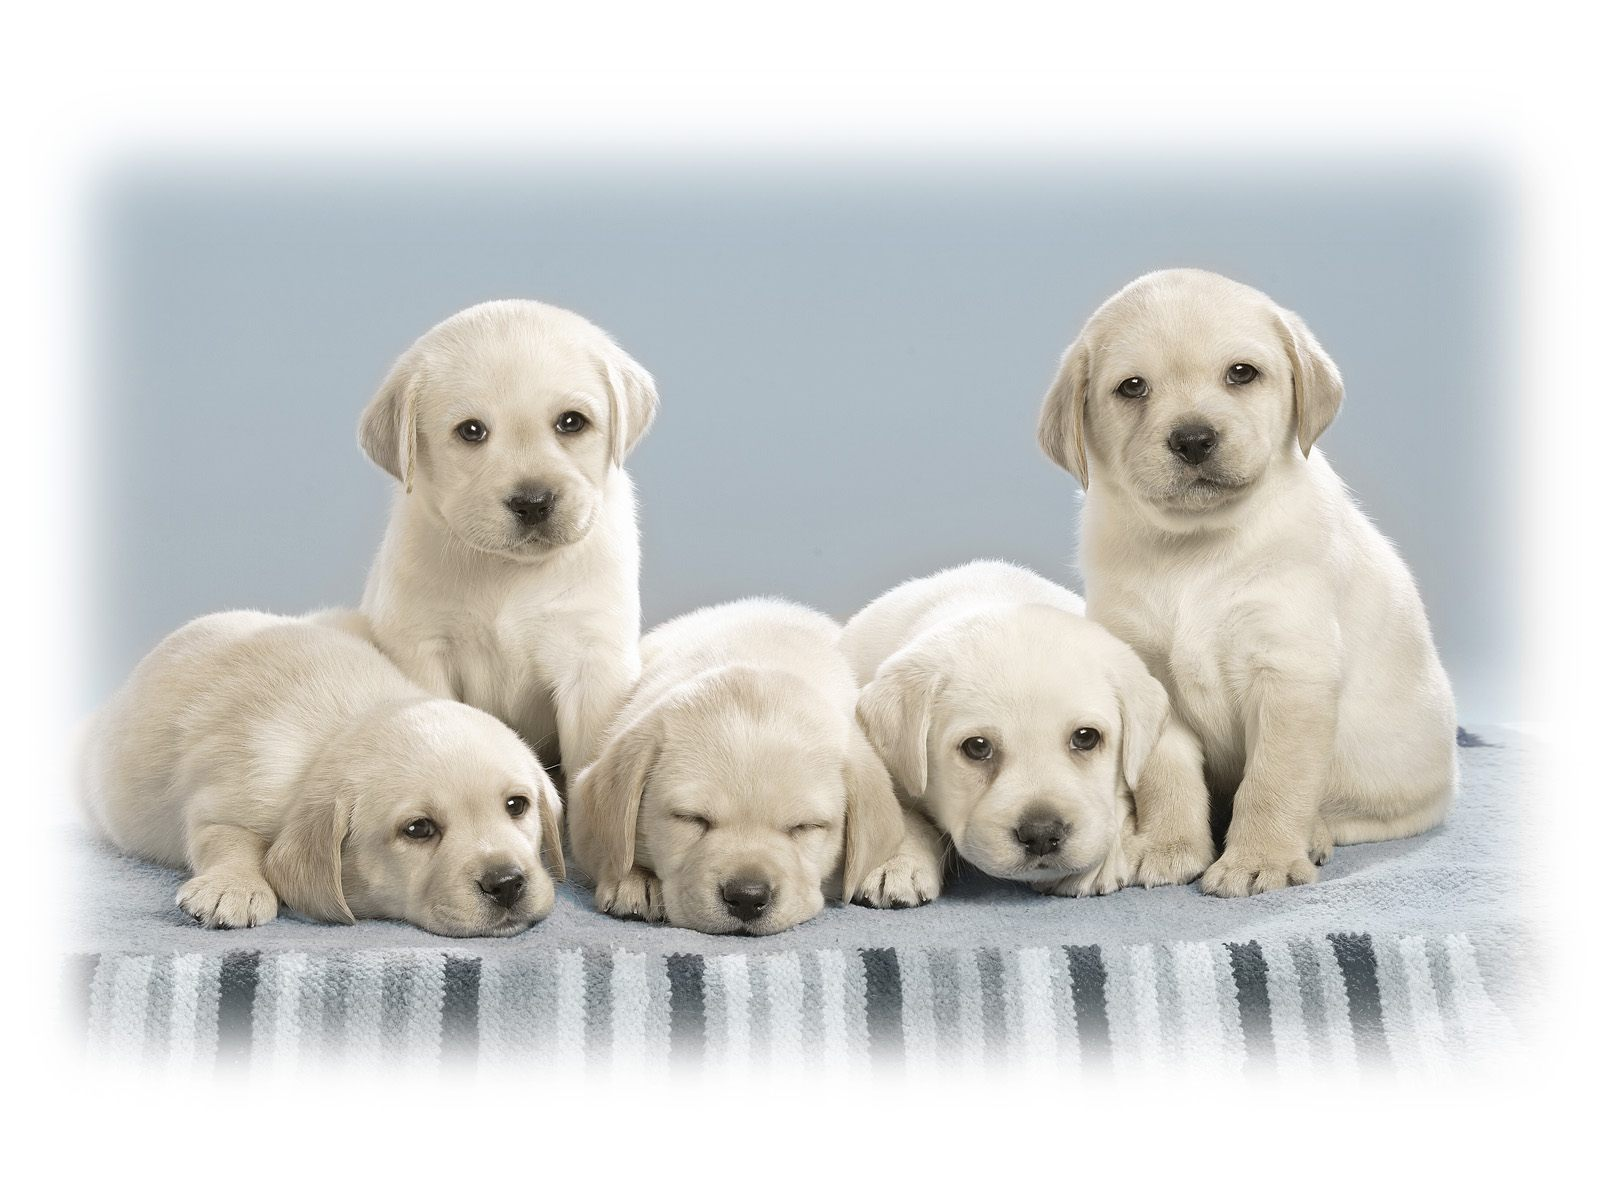 Description Cute Puppies Wallpaper is a hi res Wallpaper for pc 1600x1200